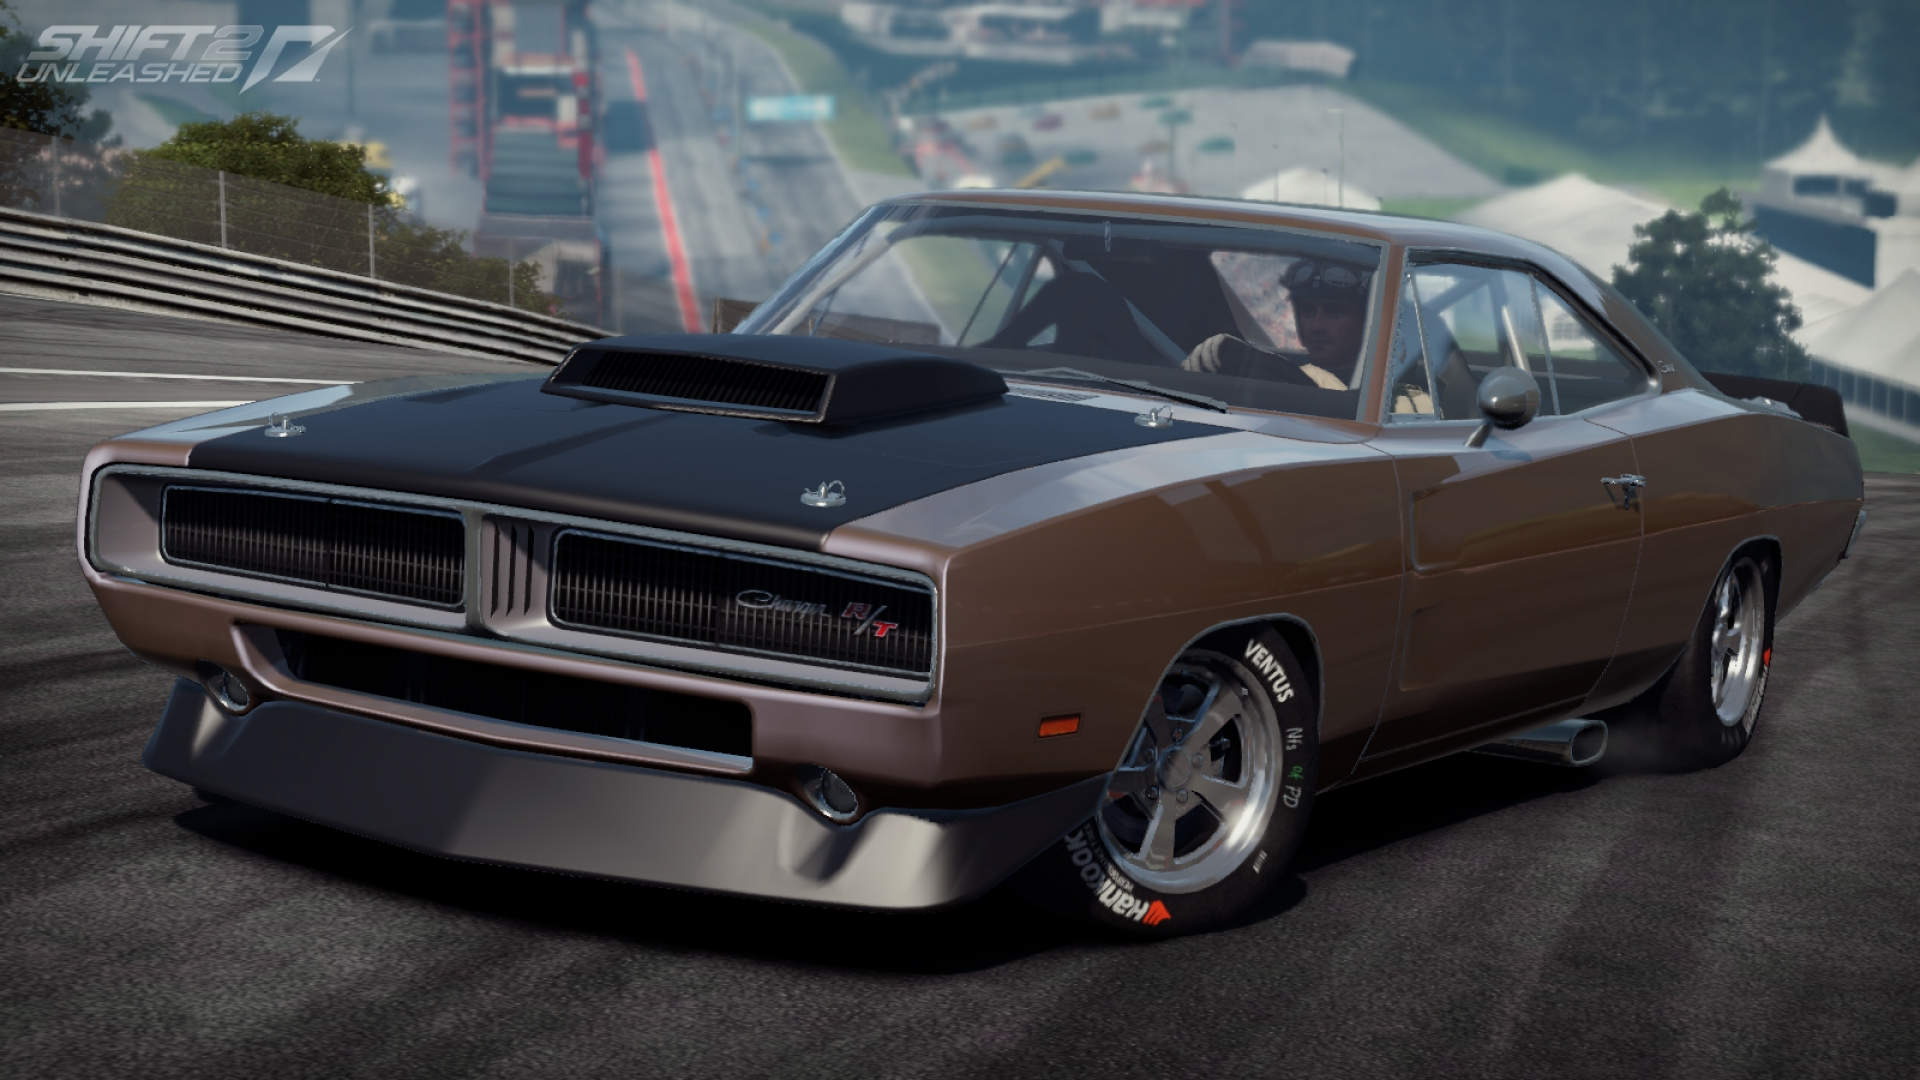 Auto Sportive Immagini 1970 Dodge Charger Hd Wallpaper And